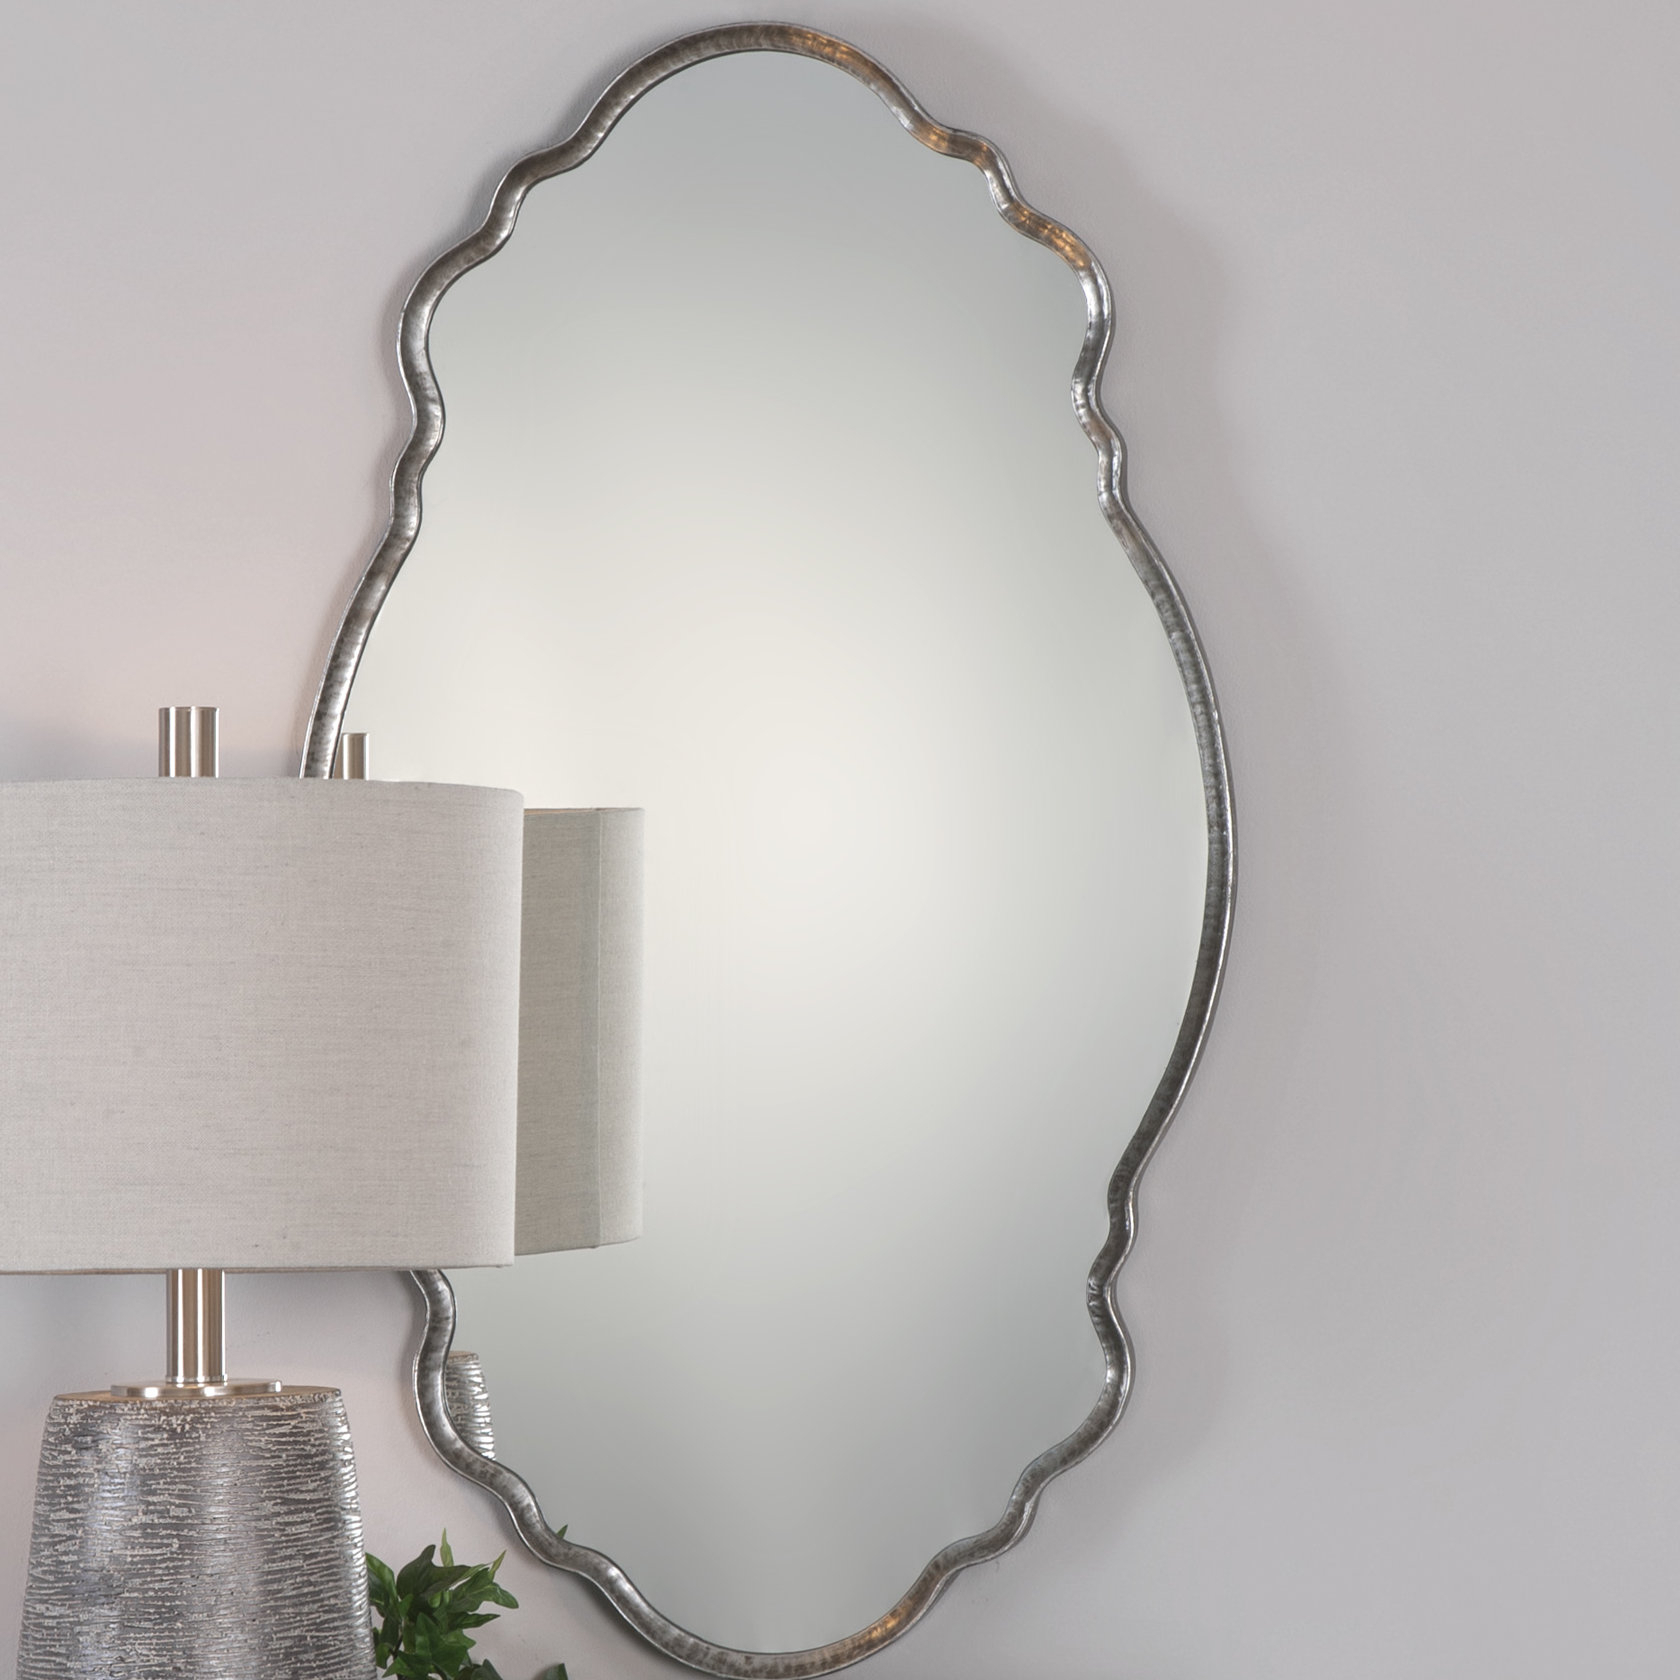 Modern Arch / Crowned Top Wall Mirrors   Allmodern With Regard To Ekaterina Arch/crowned Top Wall Mirrors (View 25 of 30)